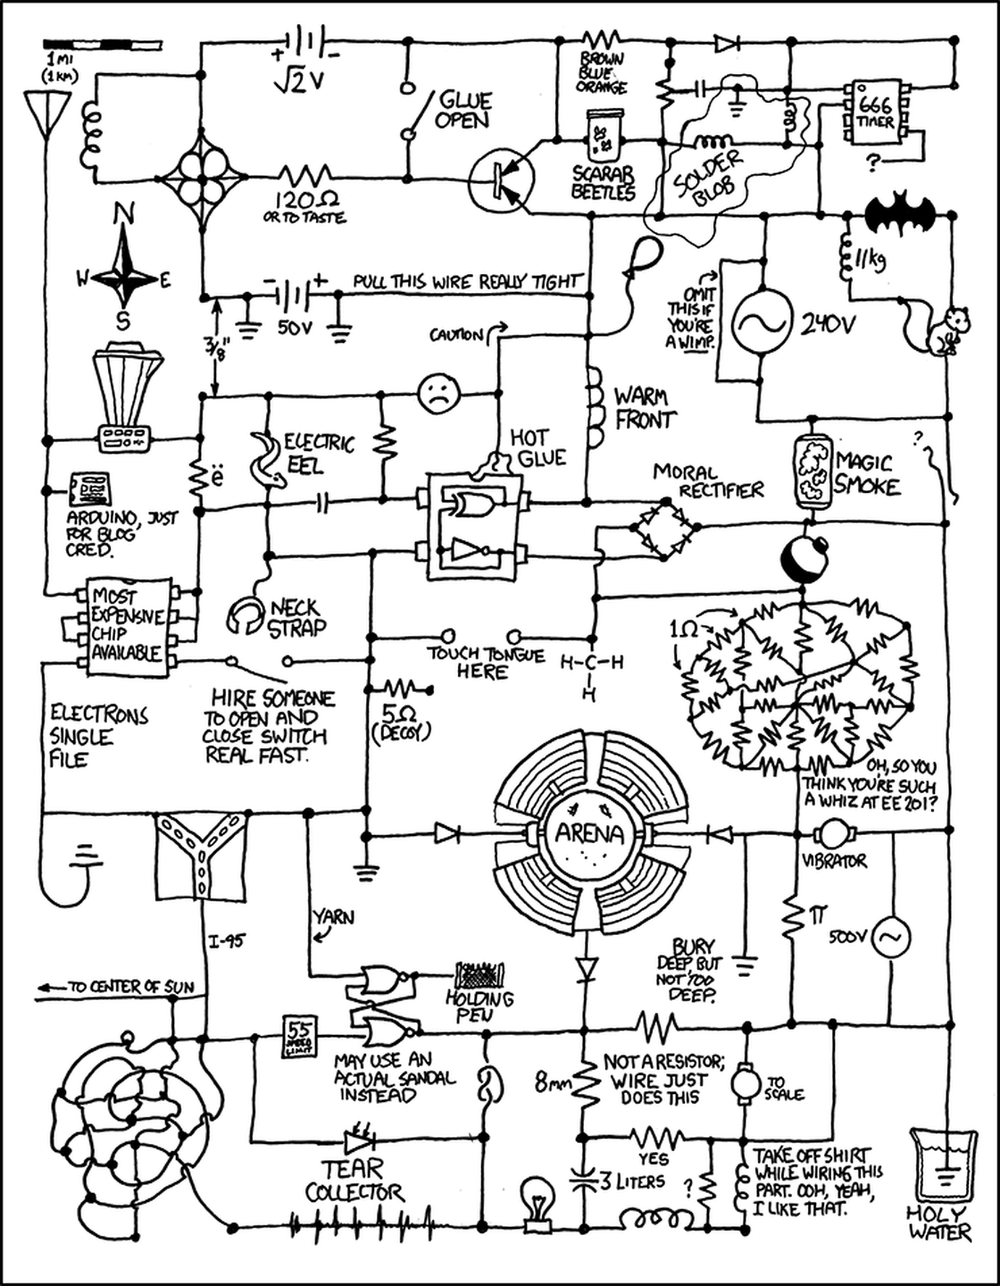 Rube Goldberg Machine Google Search Helplessness Blues Free Circuit Simulatorcircuit Design And Simulation Software List